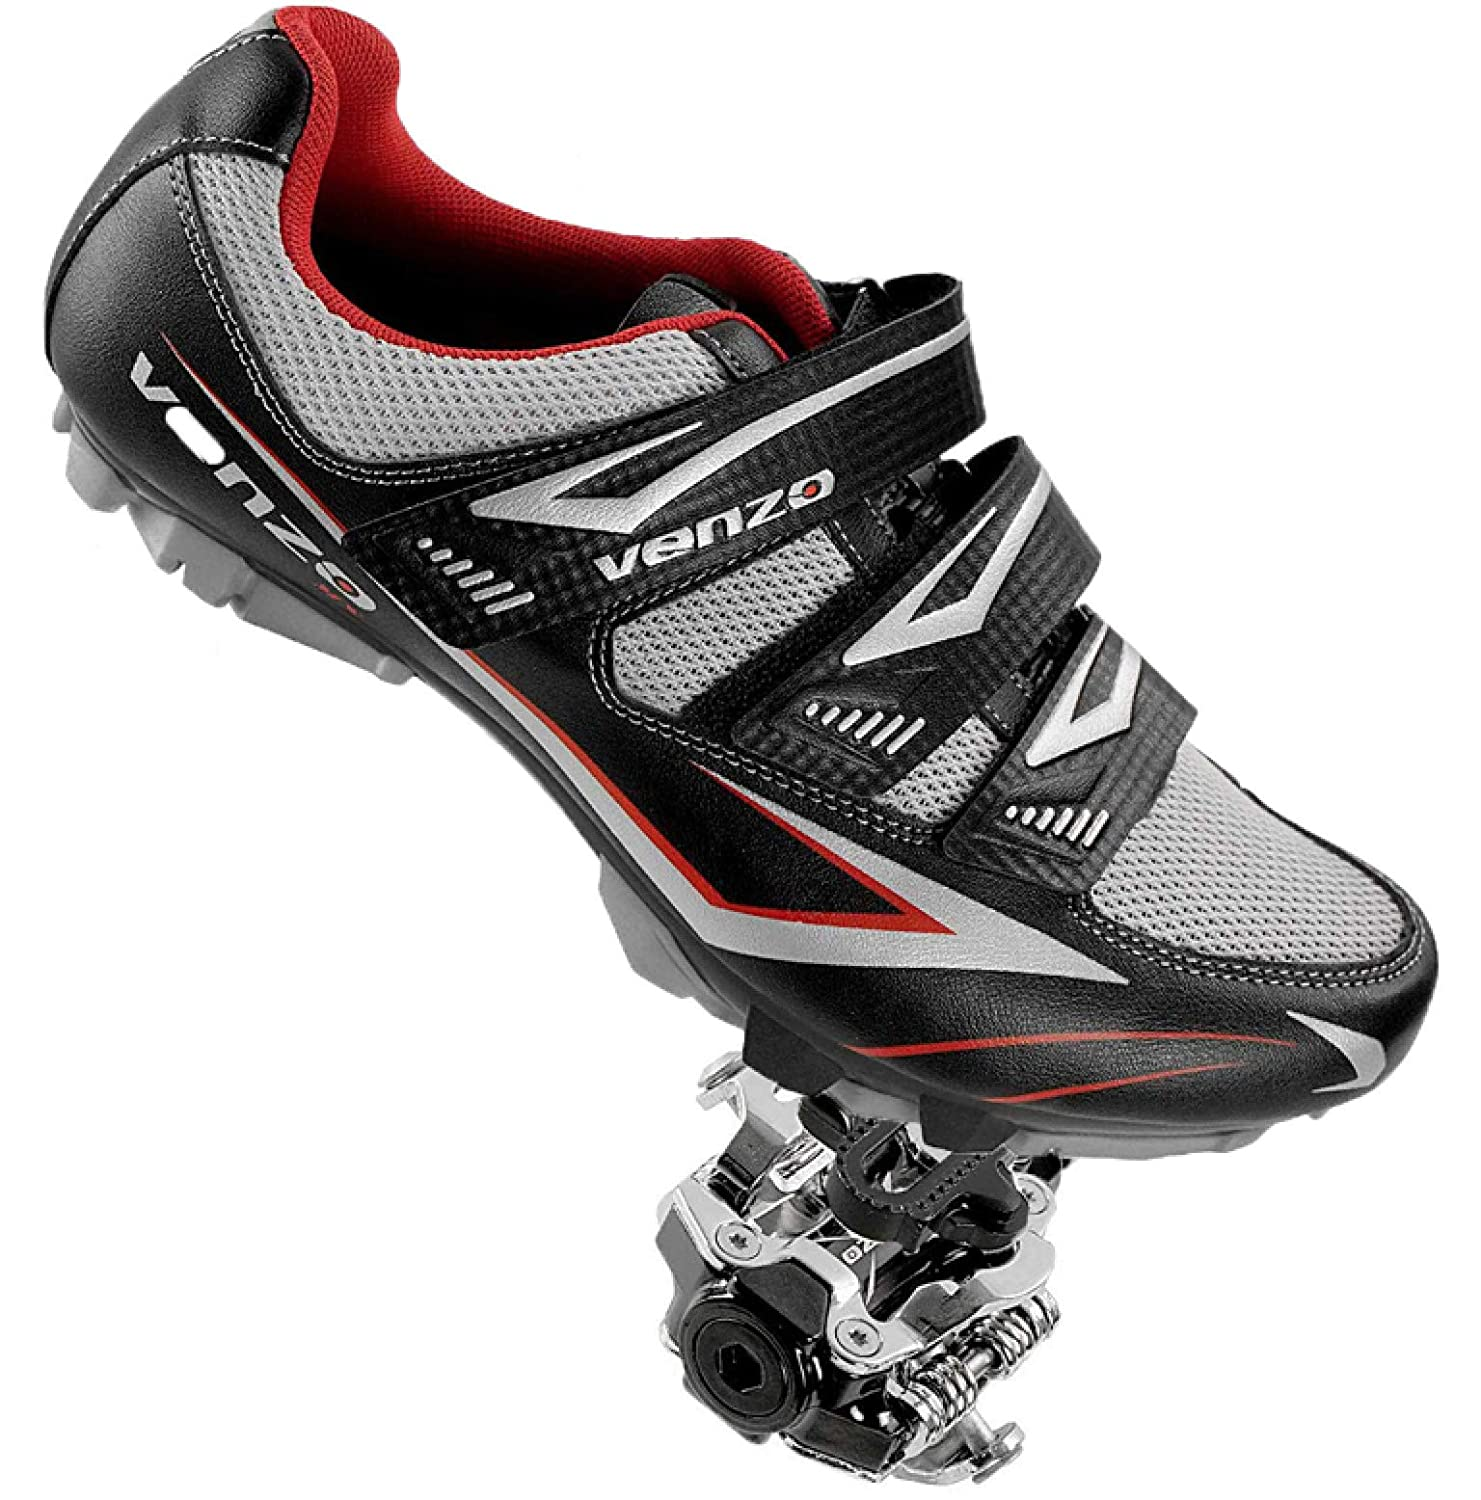 Venzo Mountain Men s Bike Bicycle Cycling Compatible with Shimano SPD Shoes Pedals Cleats – Good for Spin Cycle, Off Road, MTB Package